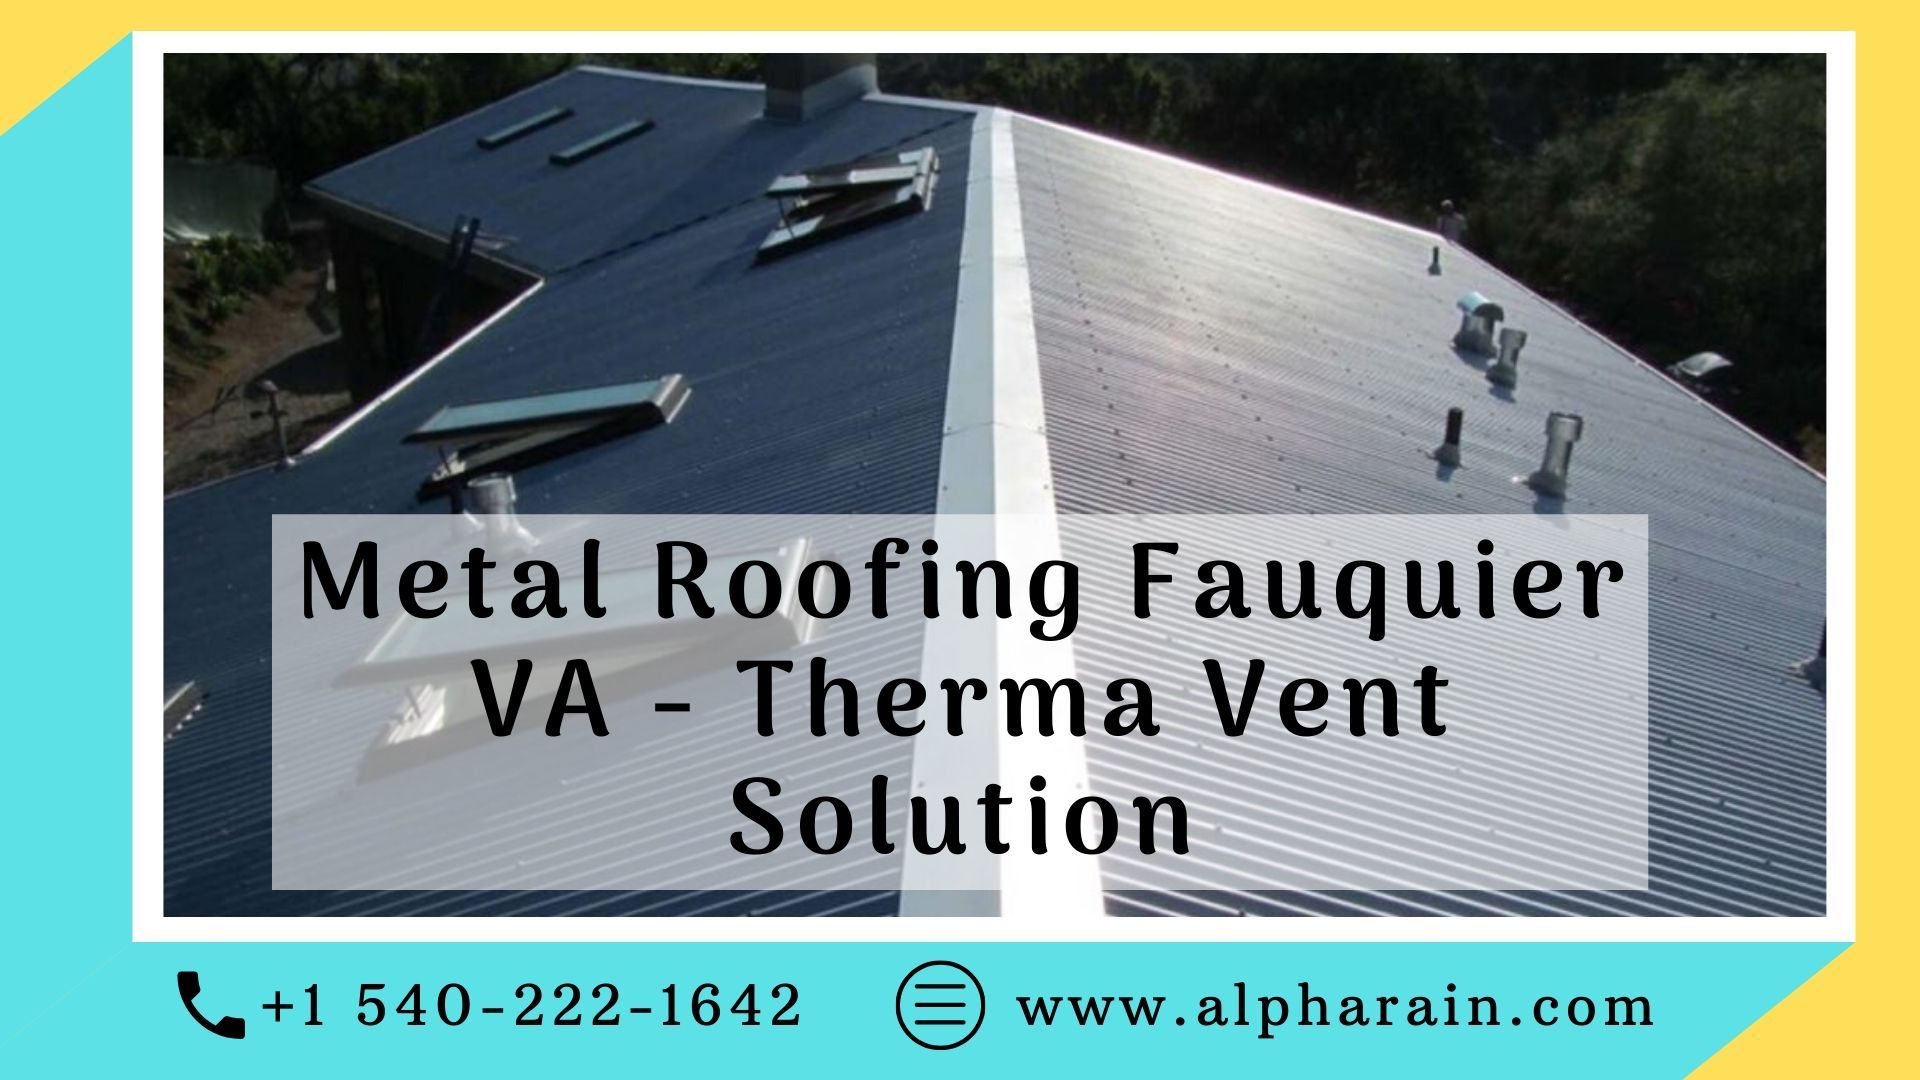 Install Metal Roofing Fauquier Va With Skilled Crew Members In 2020 Metal Roof Installation Metal Roof Roofing